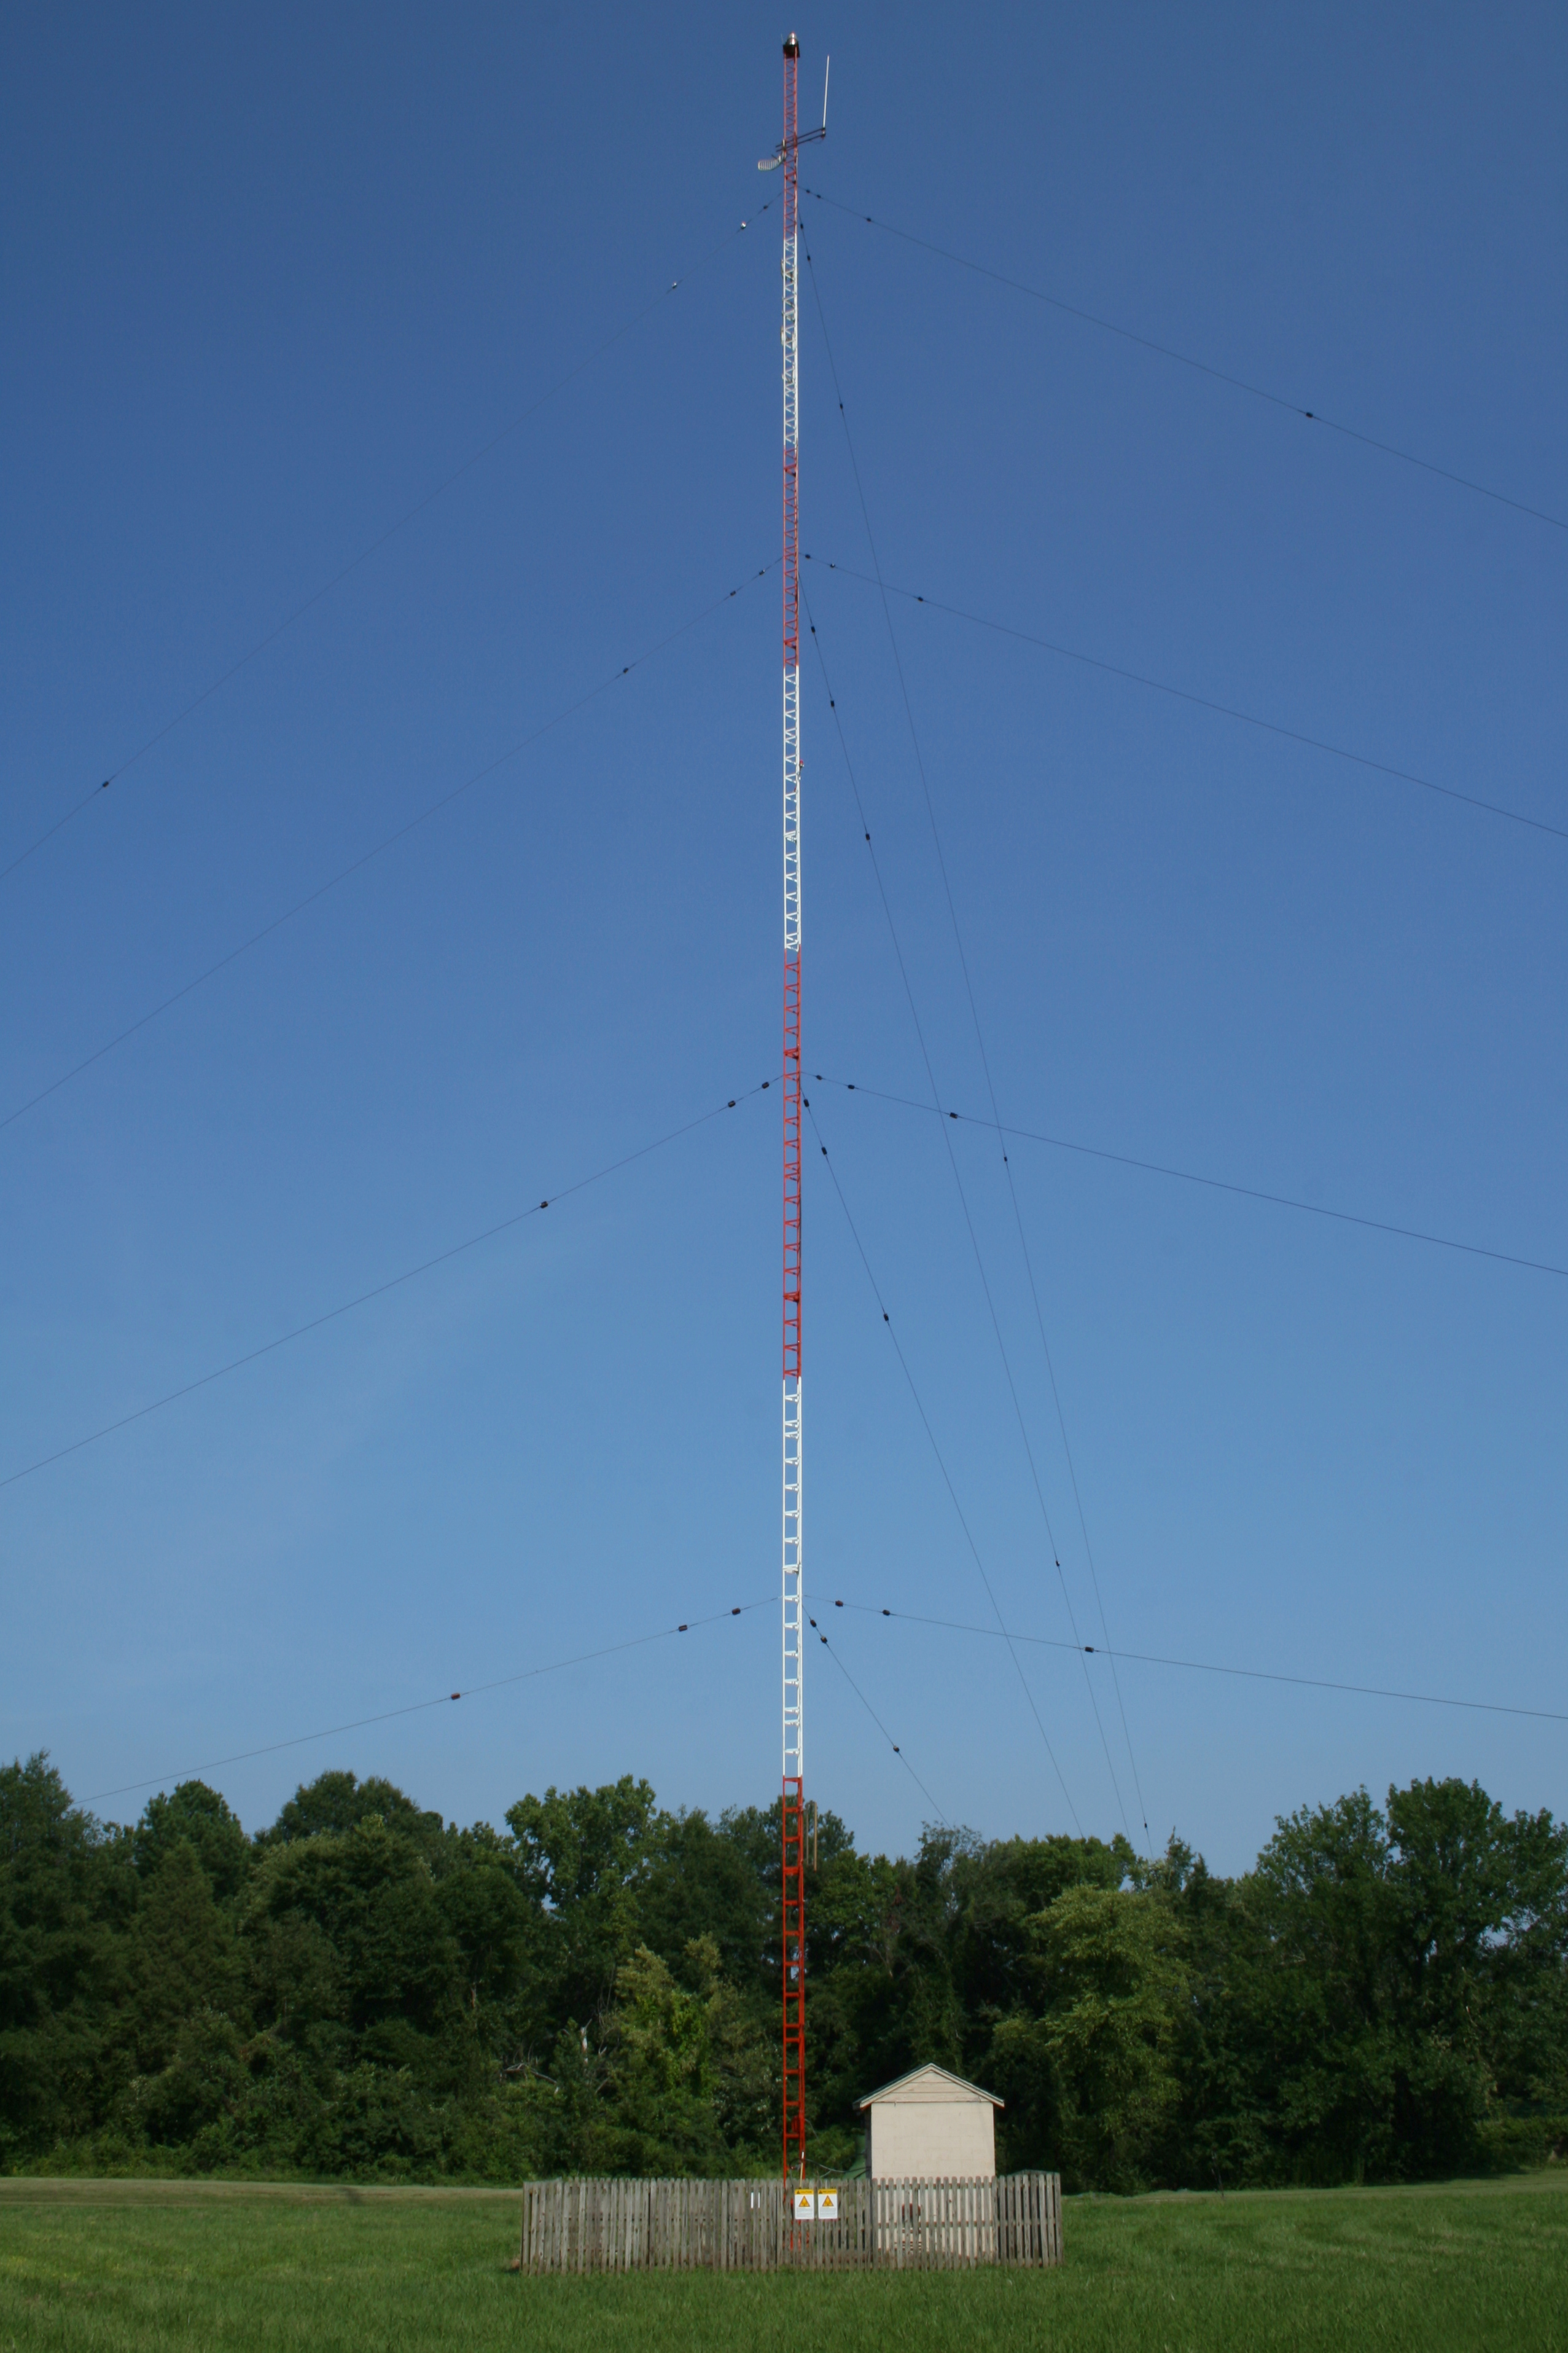 RadioNormandy05 moreover Baudot code likewise New Syma X5HW UAV Wireless FPV 60472695398 likewise Traliccio di trasmissione additionally Phonak Roger Inspiro. on old radio transmitter